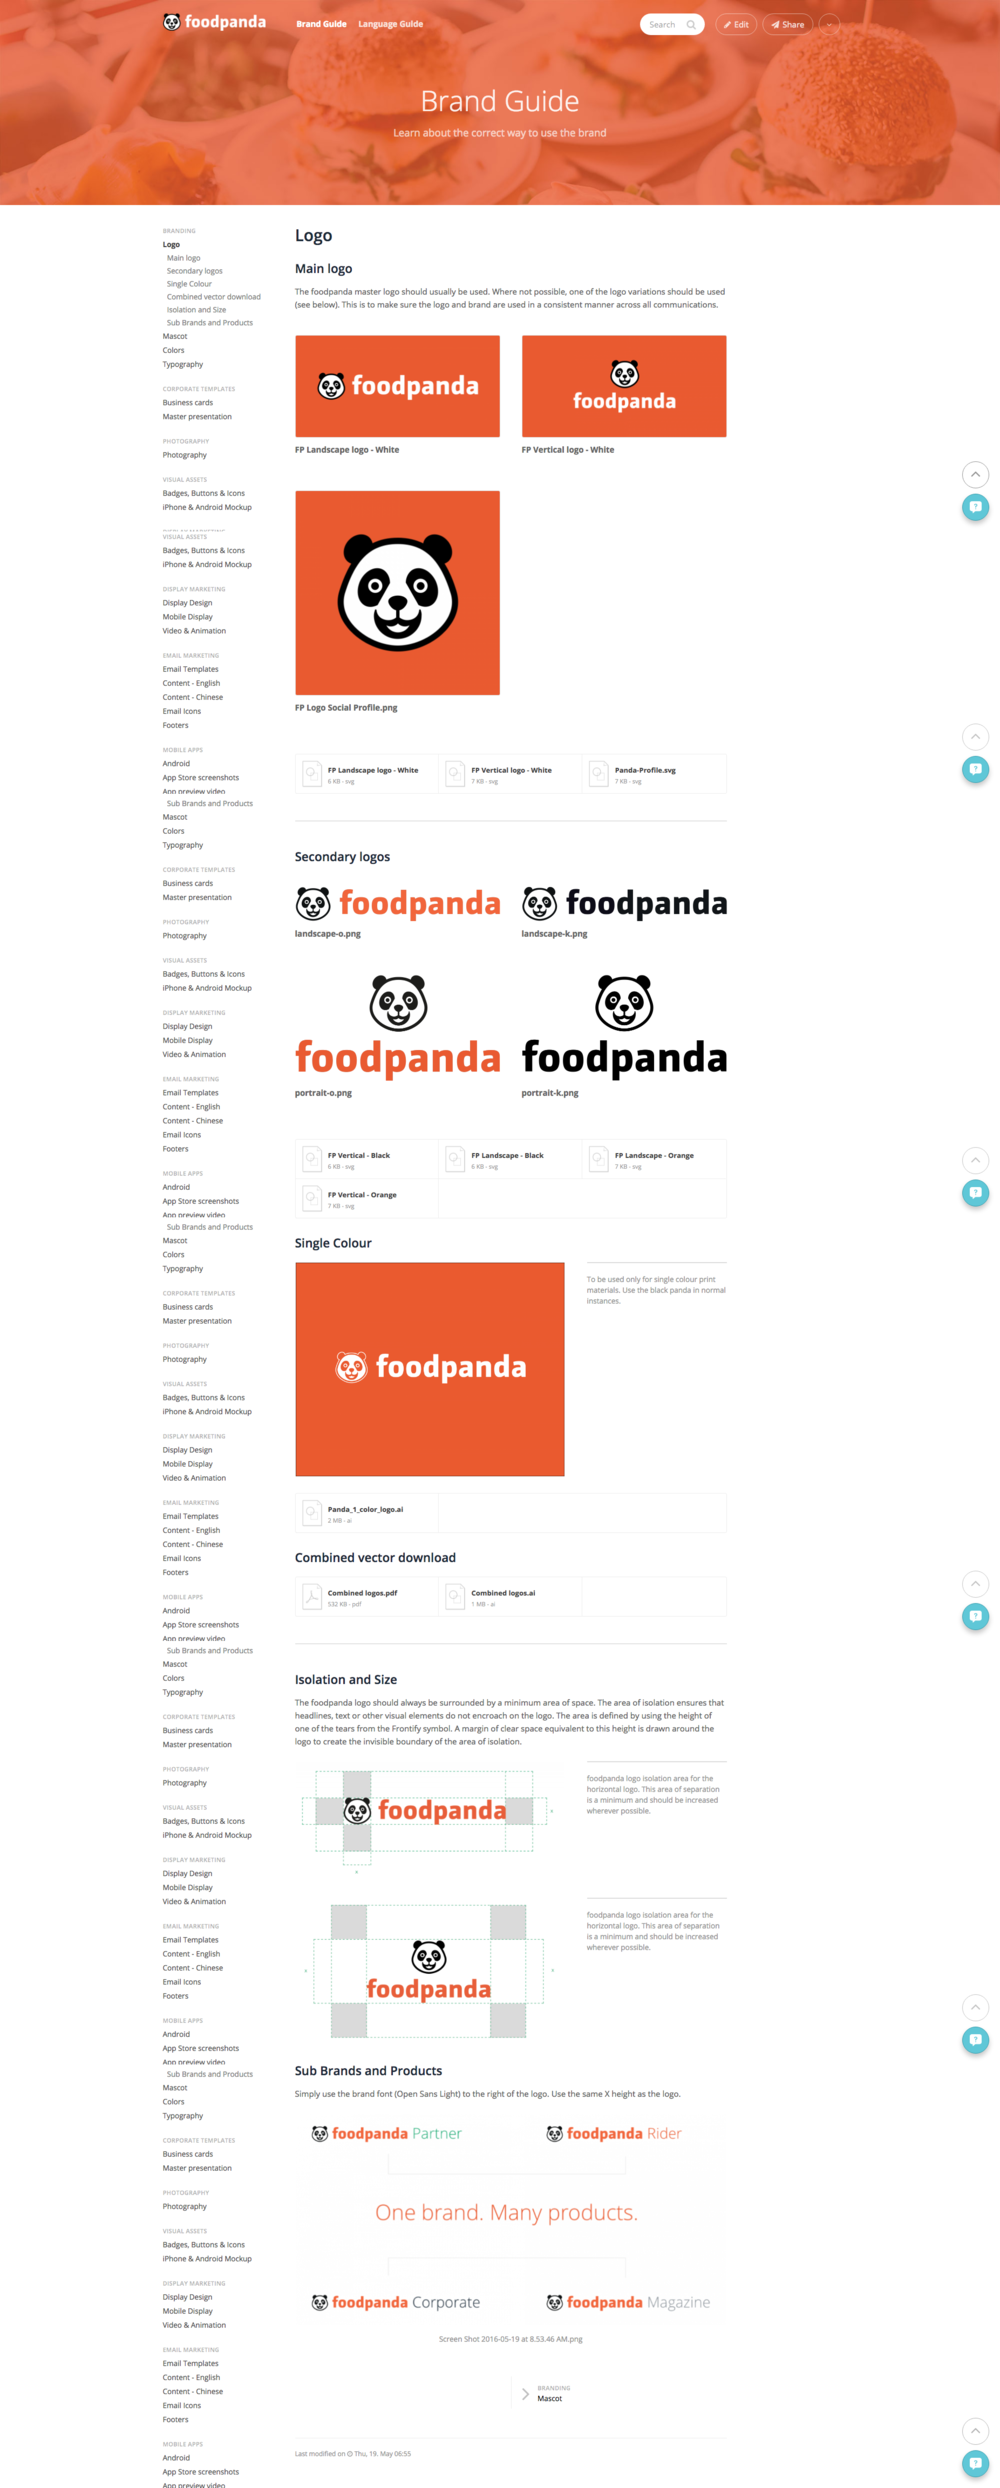 screencapture-app-frontify-com-d-YMT1a5mUOAnf-brand-guide-1464078422603.png